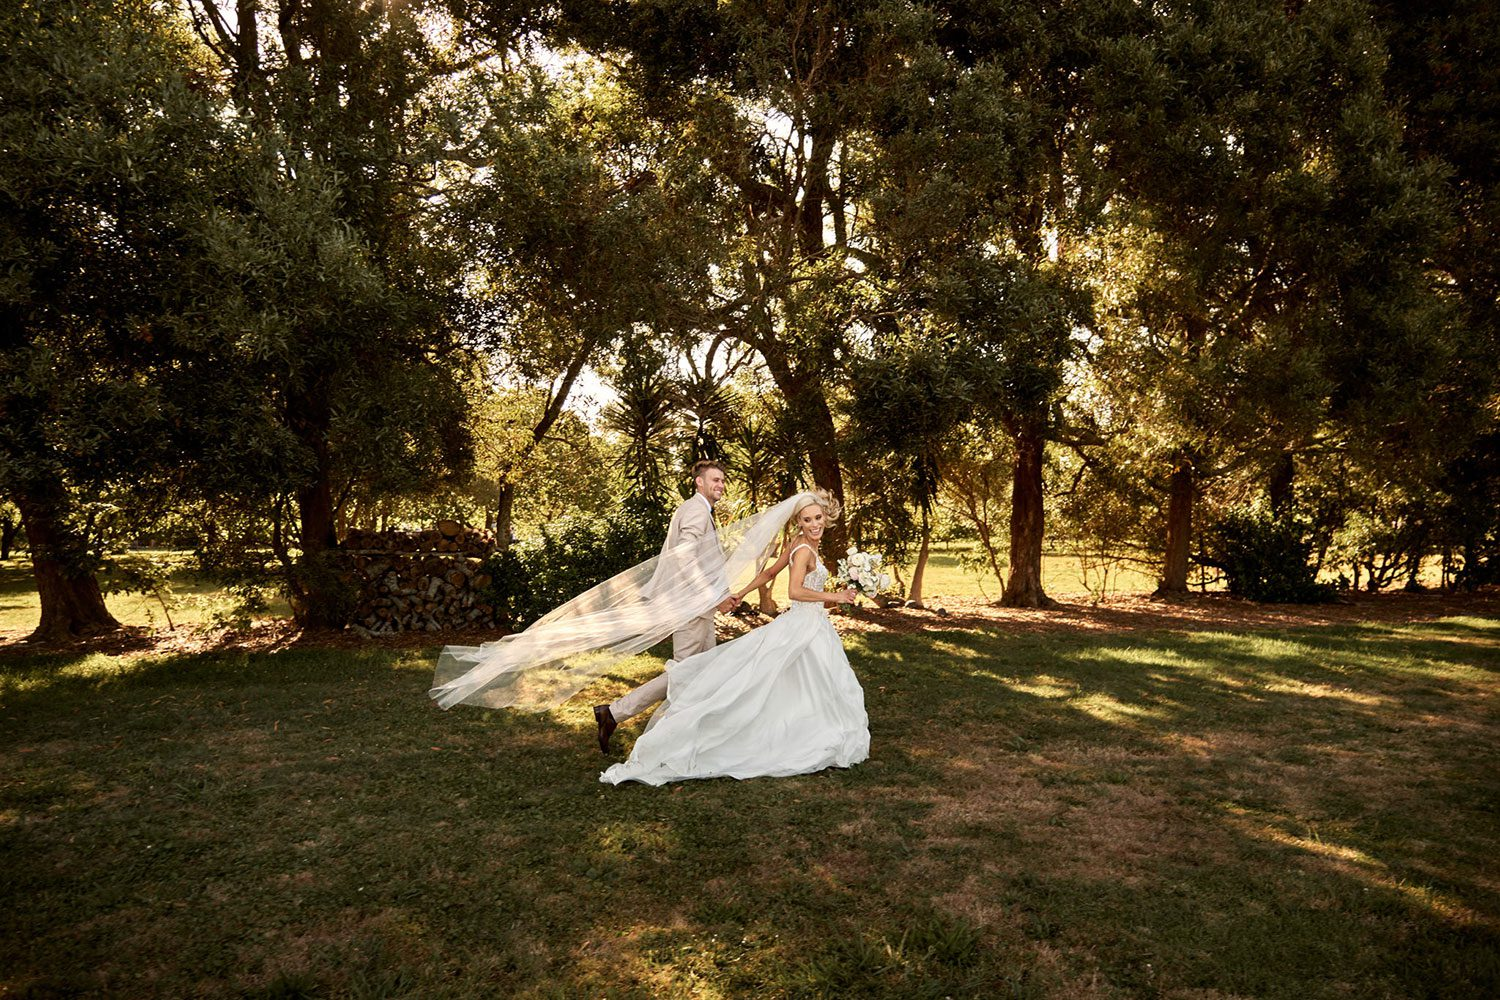 Bride wearing bespoke gown made of silk chiffon with delicate flower lace bodice by Vinka bridal designer Auckland - walking away with groom outside veil in wind